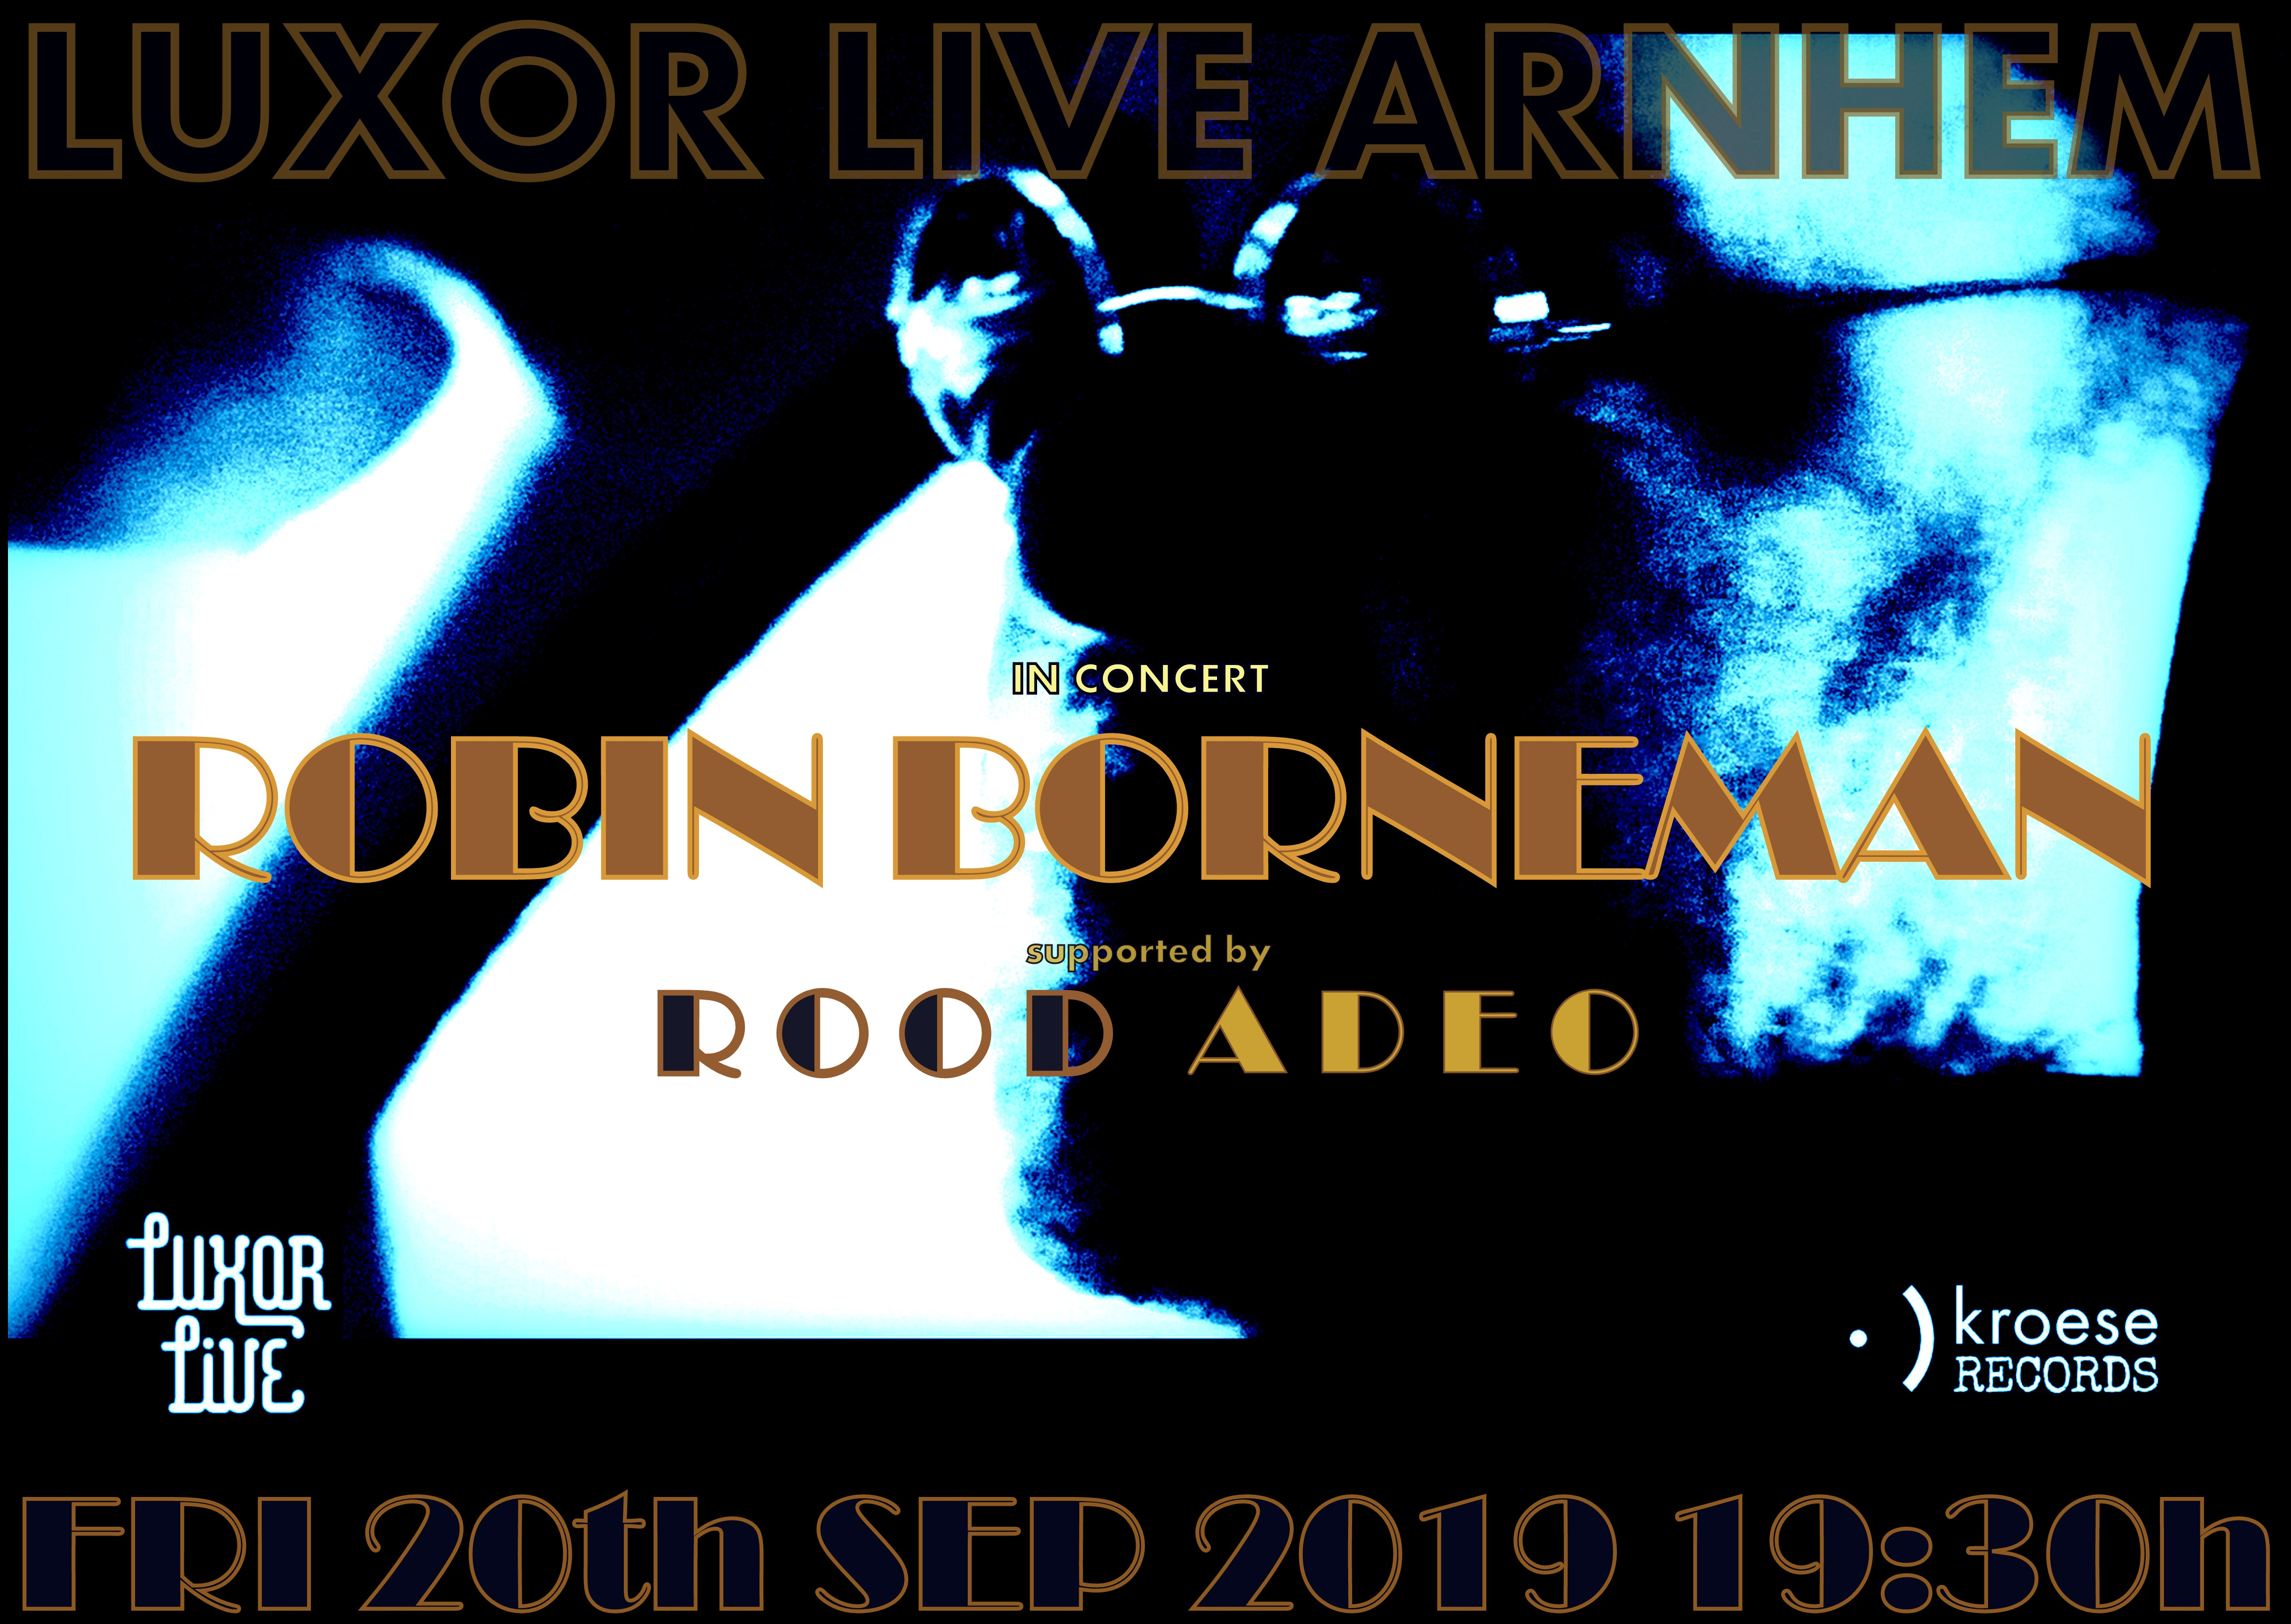 LUXOR LIVE - in convert: Robin Bornman supported by Rood Adeo